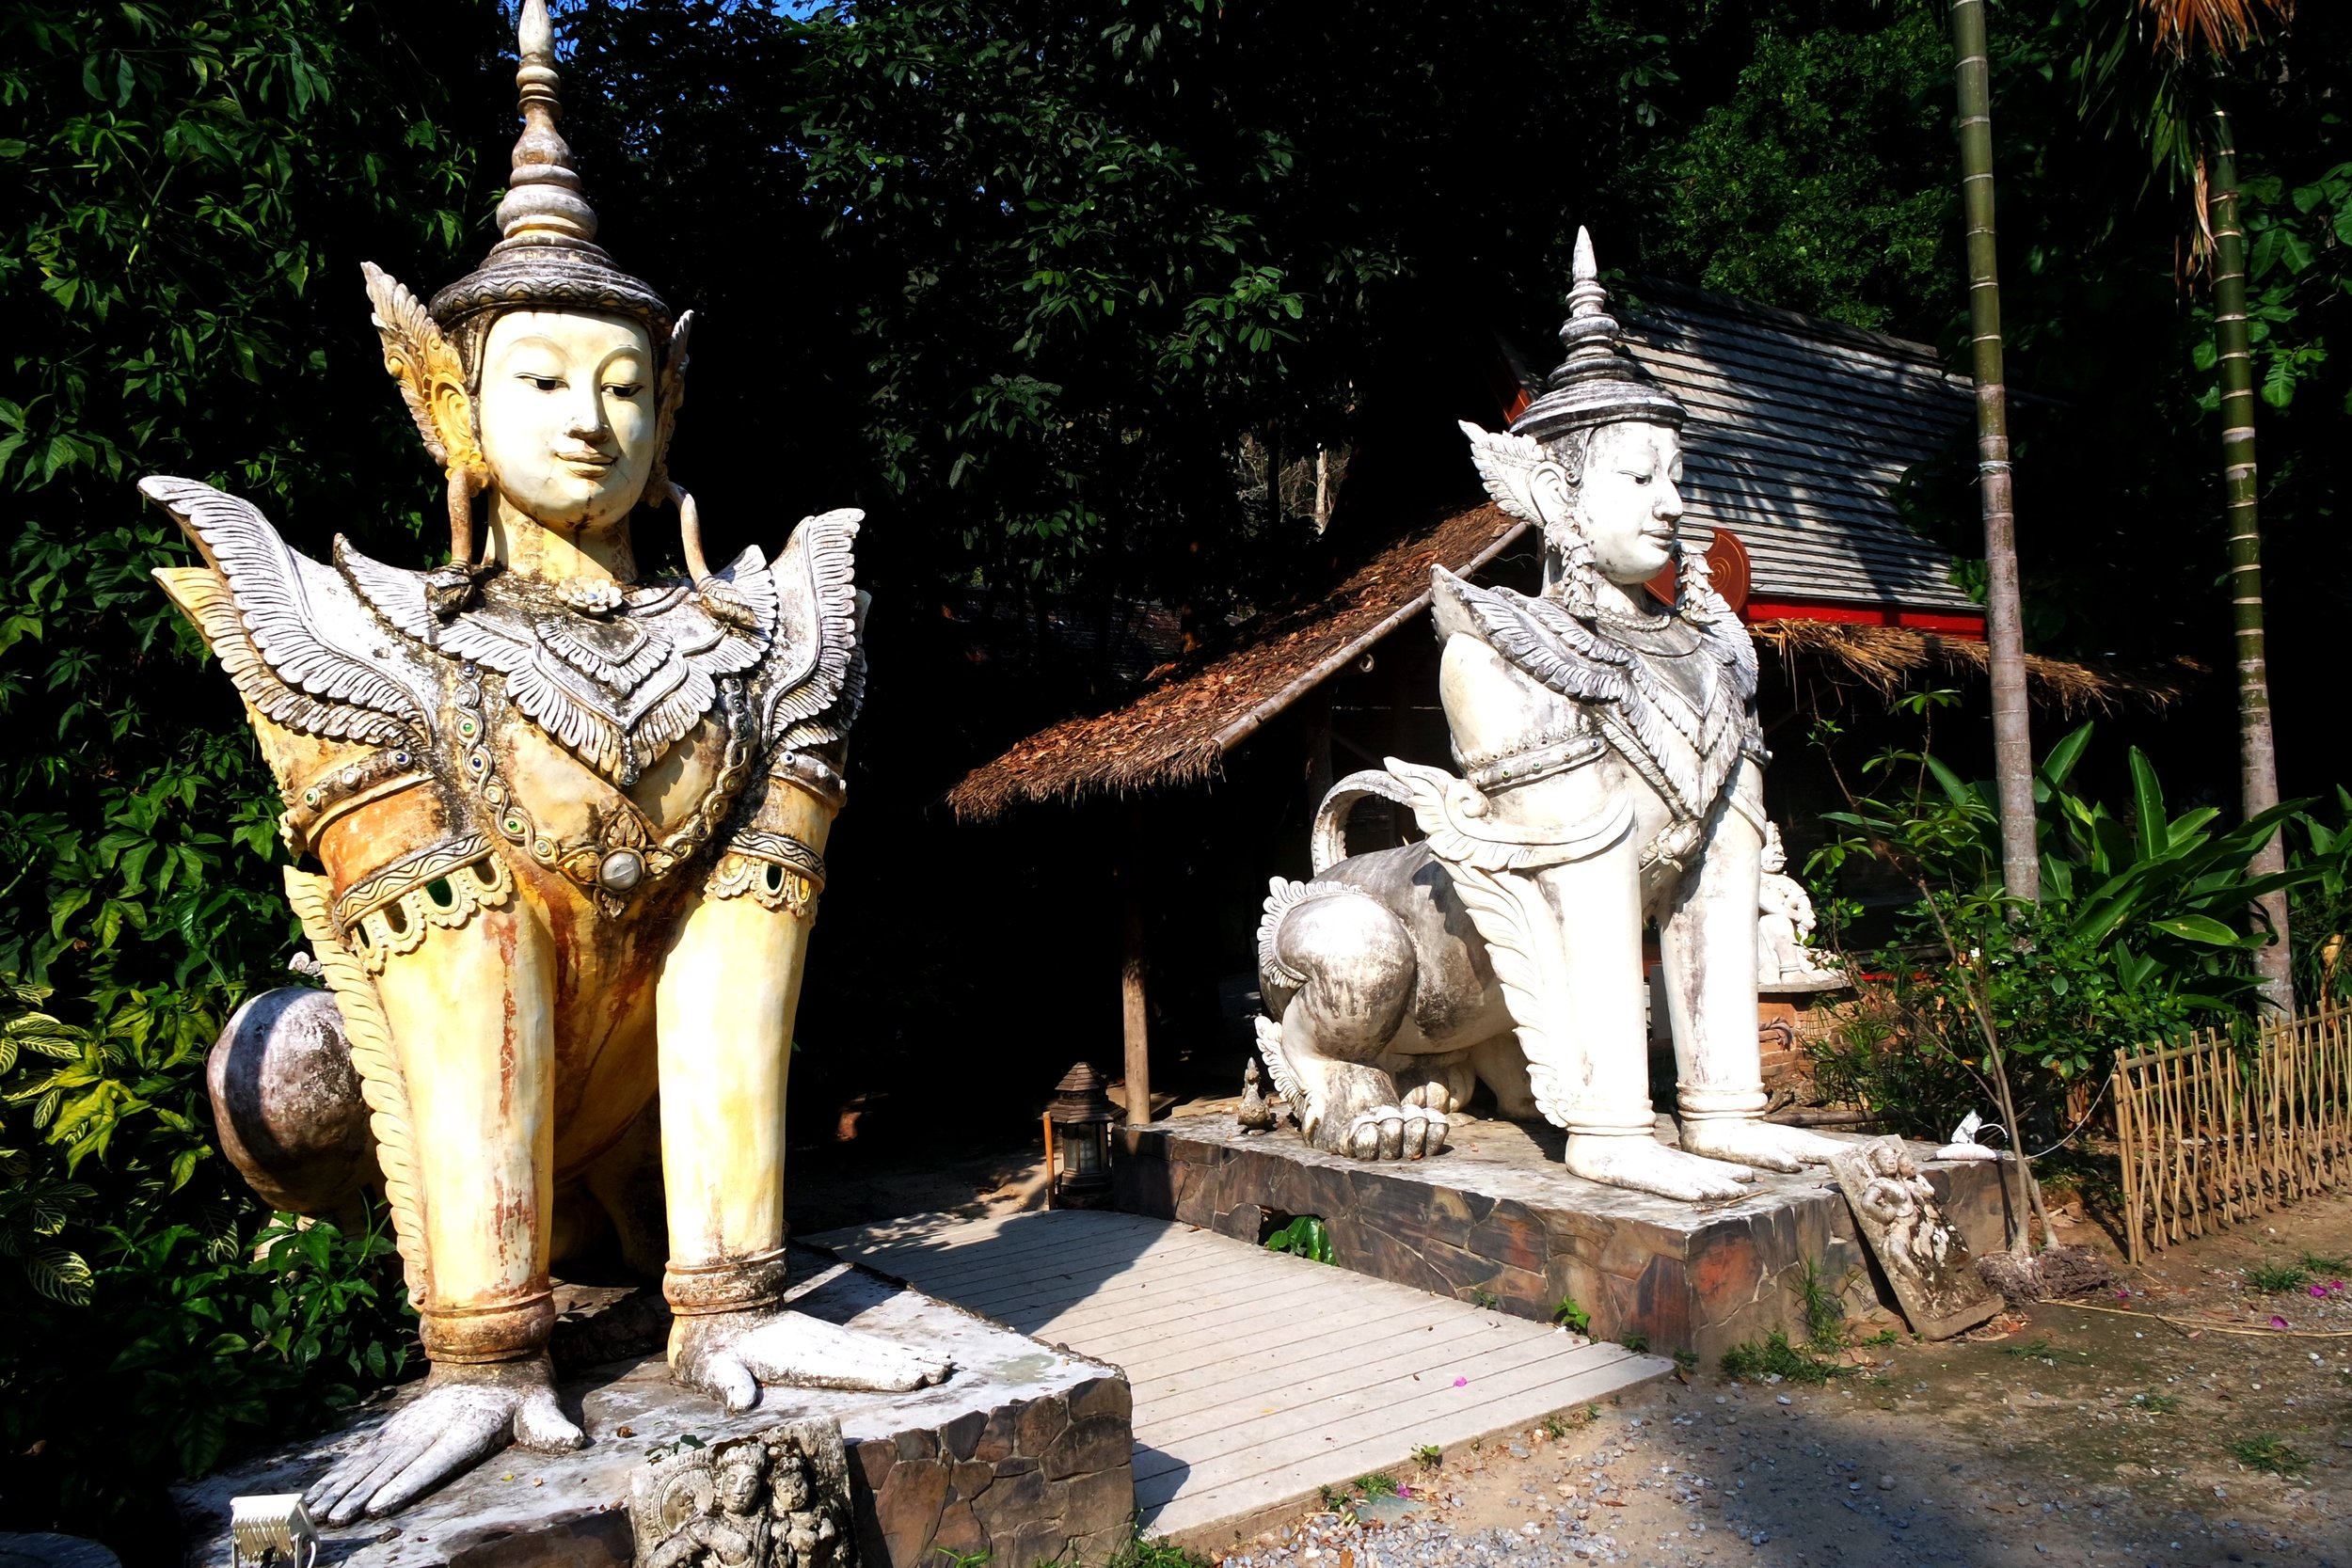 These Burmese sphinxes, known as manussihas, guard the temple complex of Wat Palad